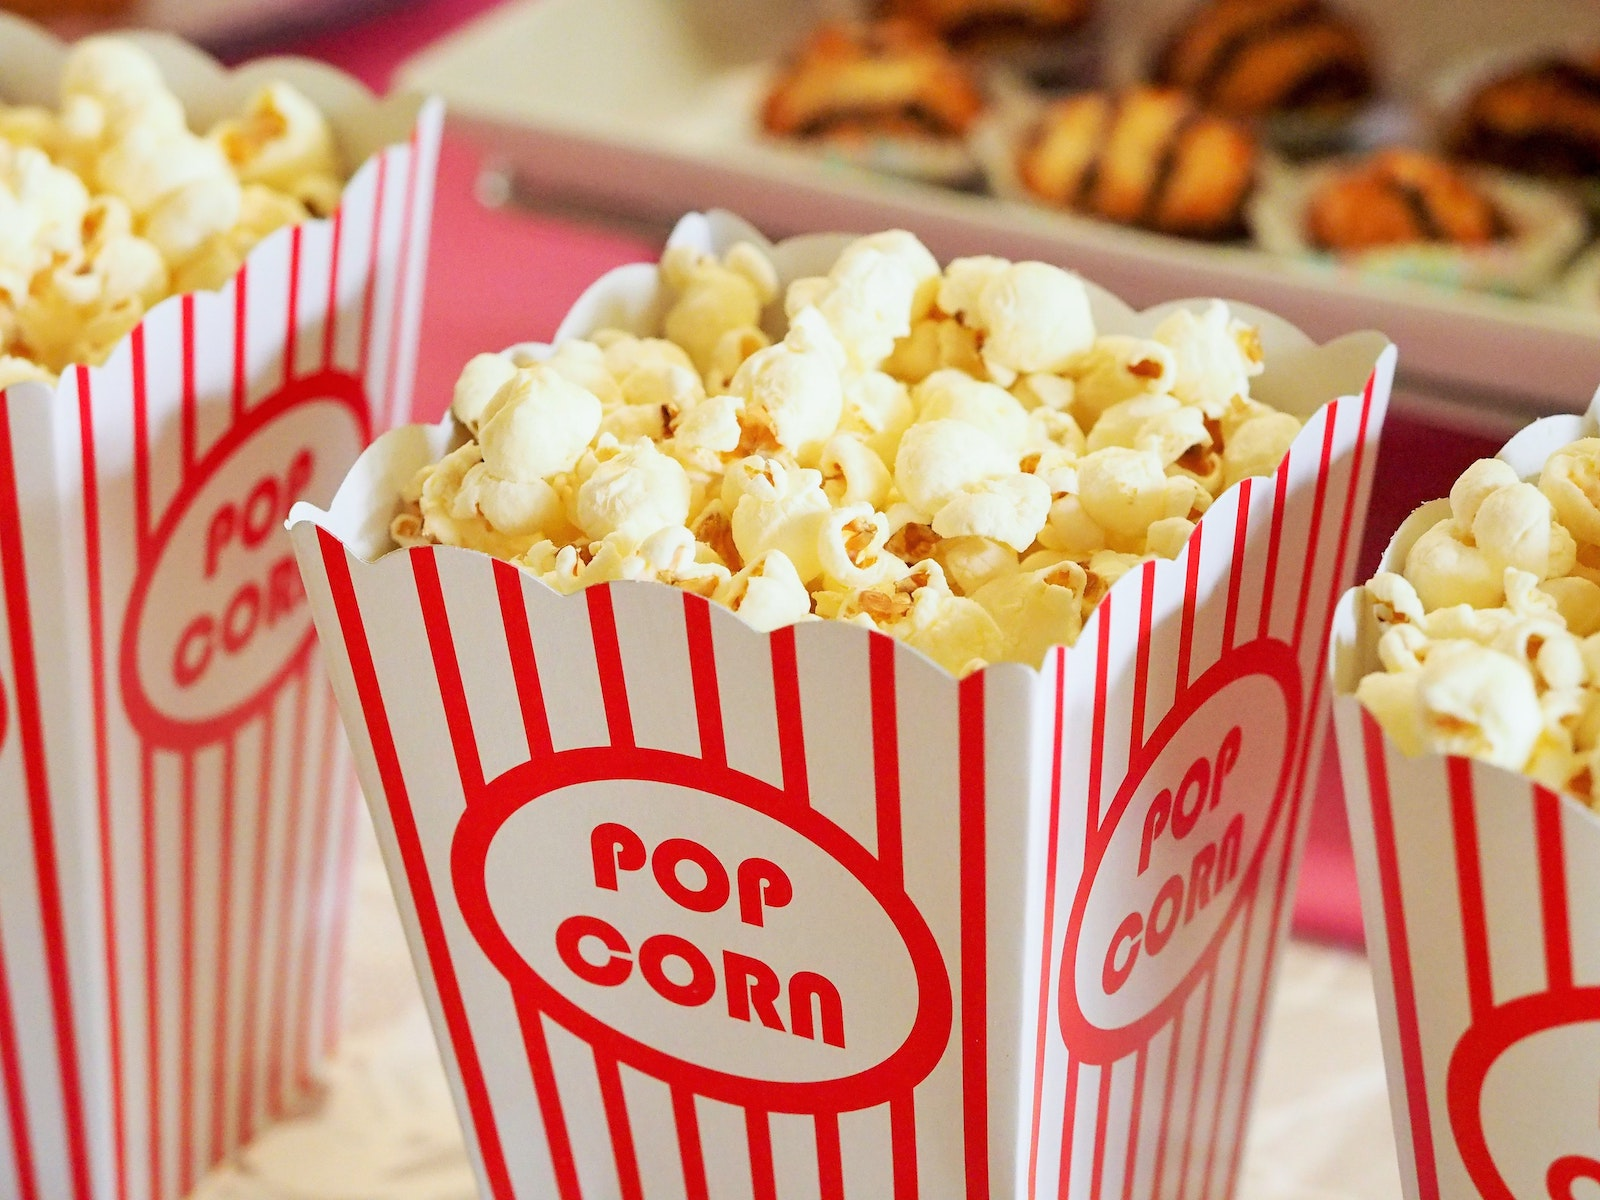 Popcorn cinema stock pic Barco